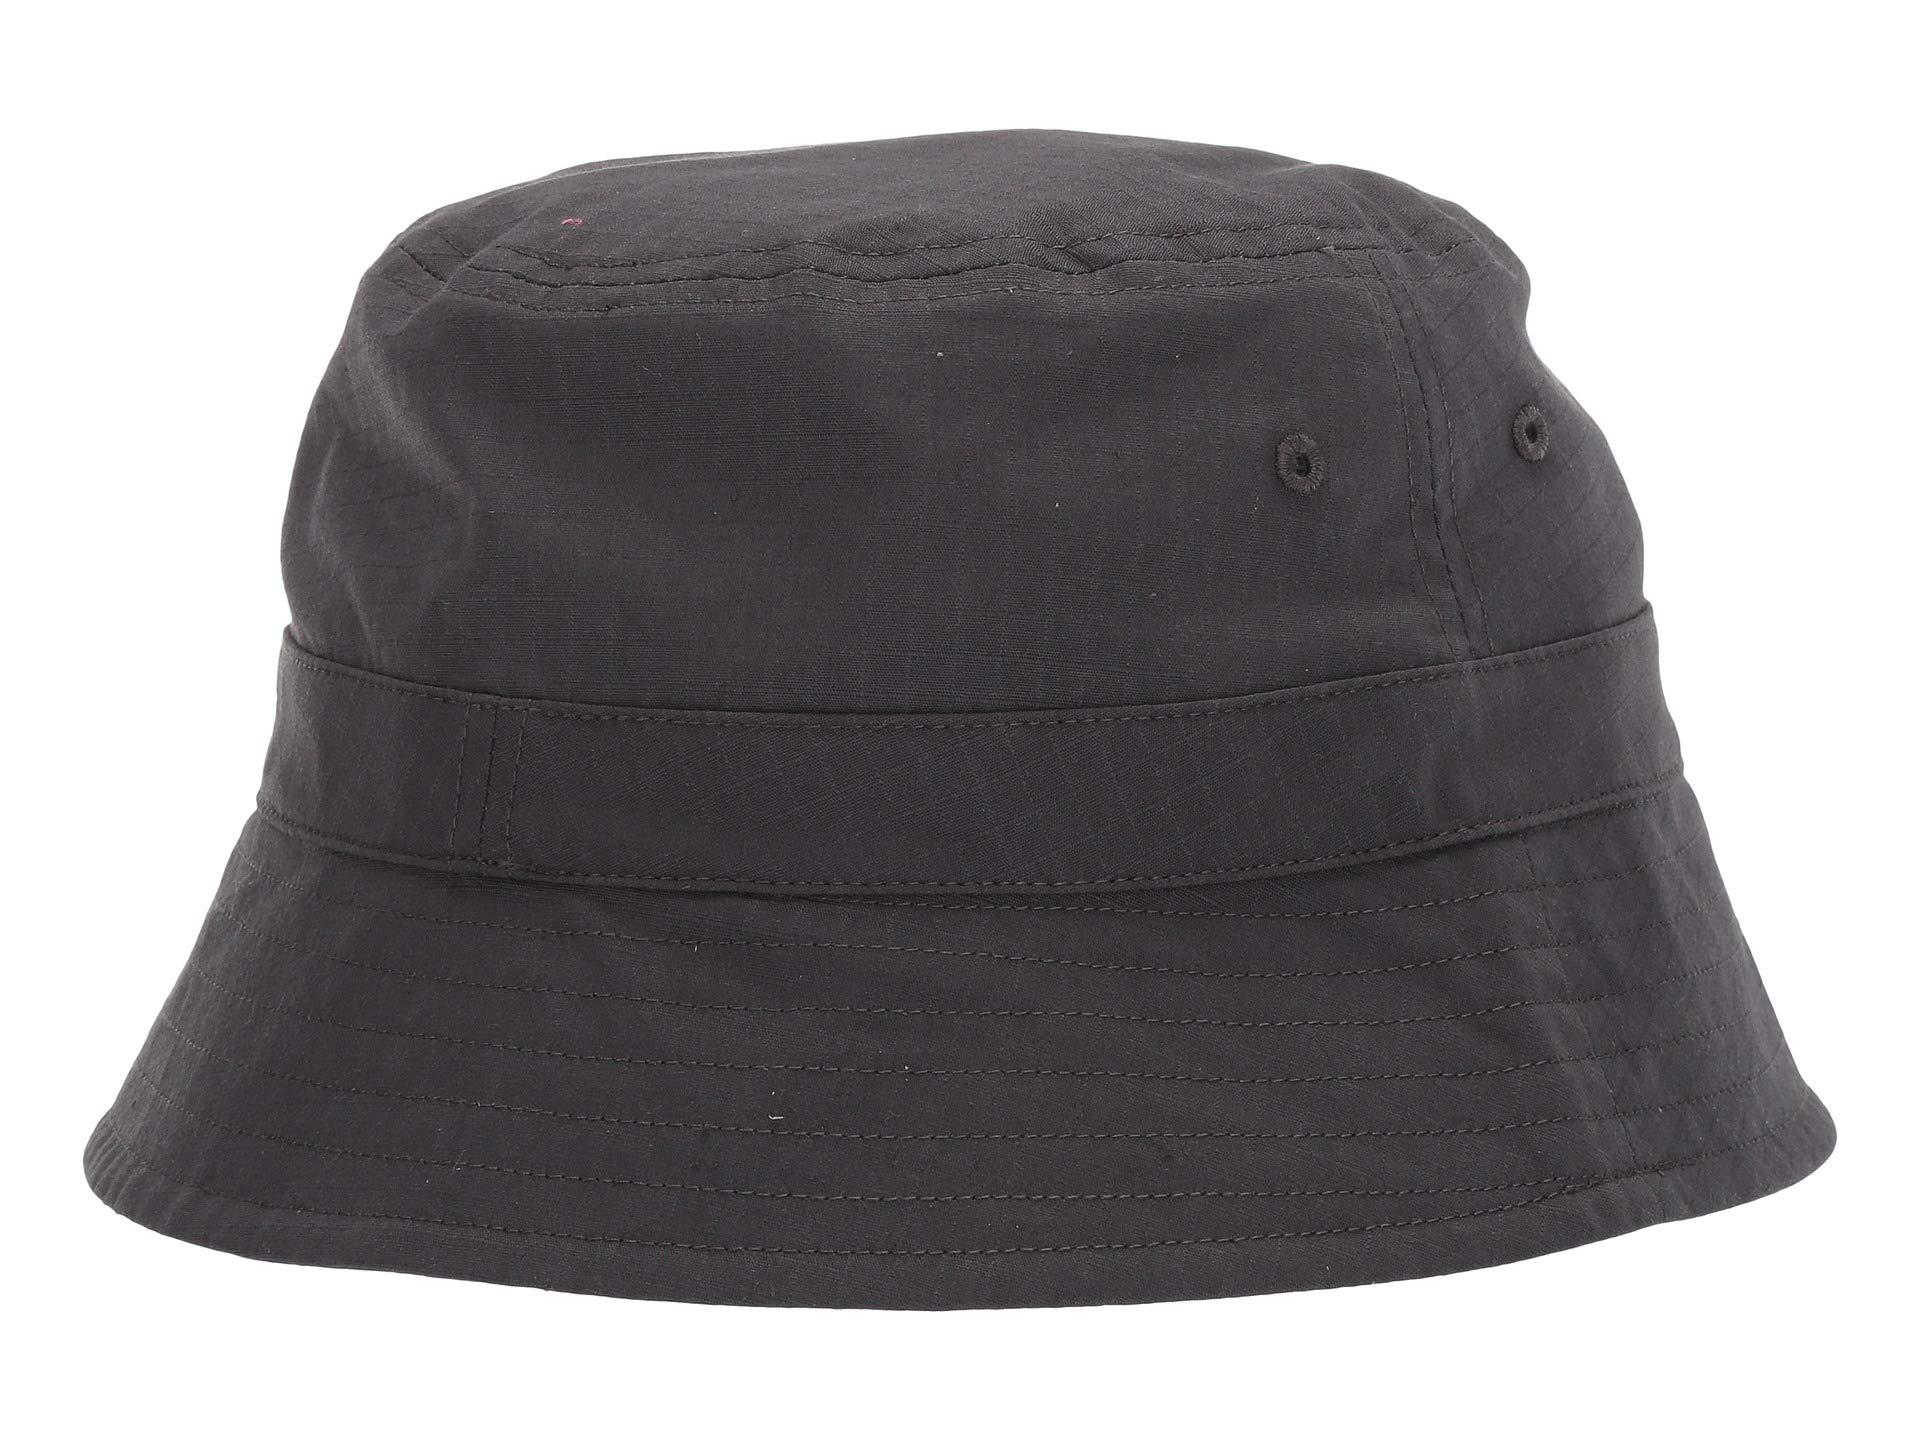 a137cd7a738a9b The North Face Cotton Bucket Hat (kelp Tan) Bucket Caps in Gray for ...